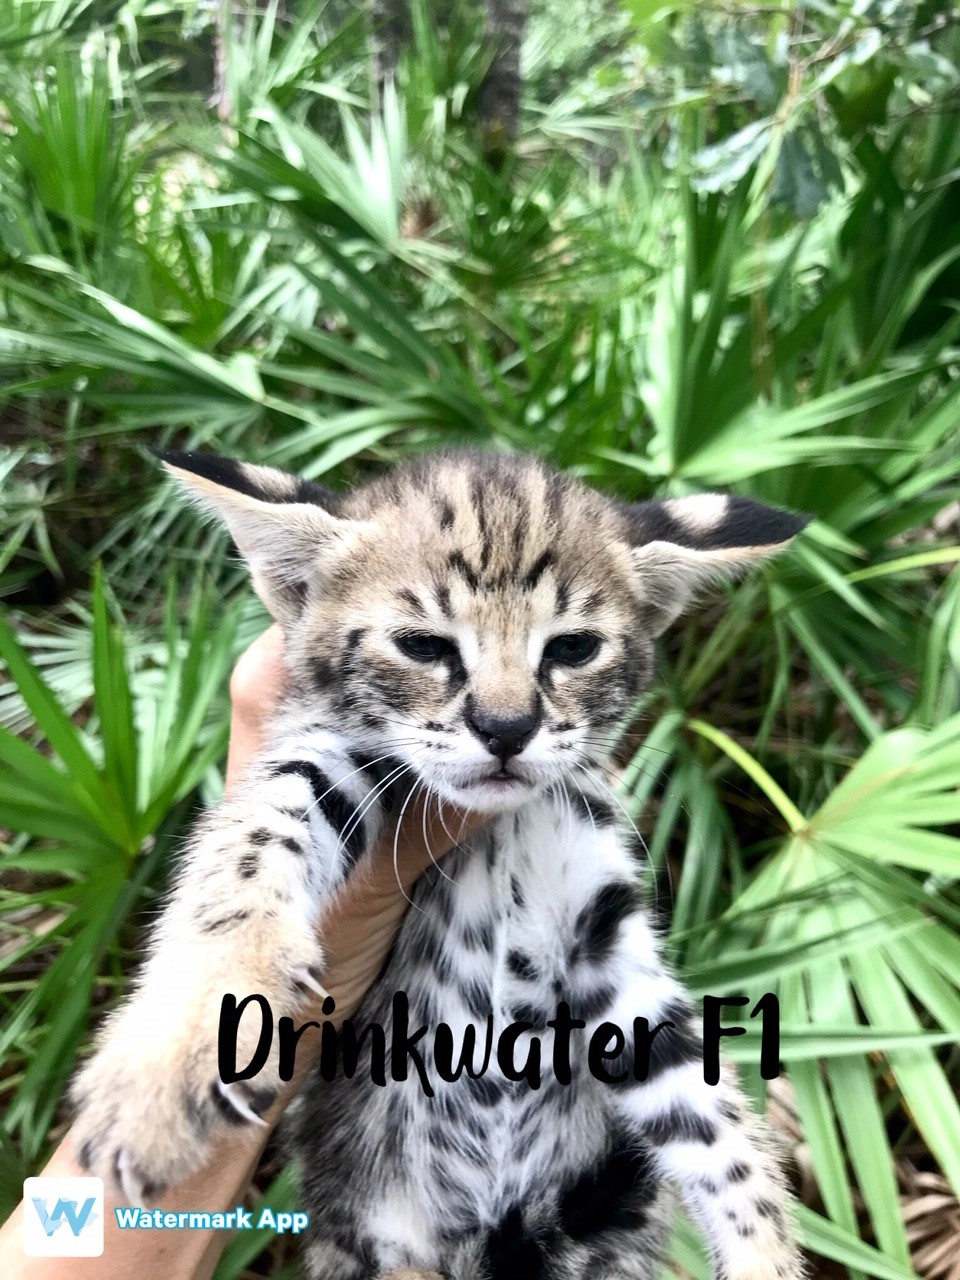 Available F1 Savannah Kittens For Sale At Drinkwater F1 Savannah Cats